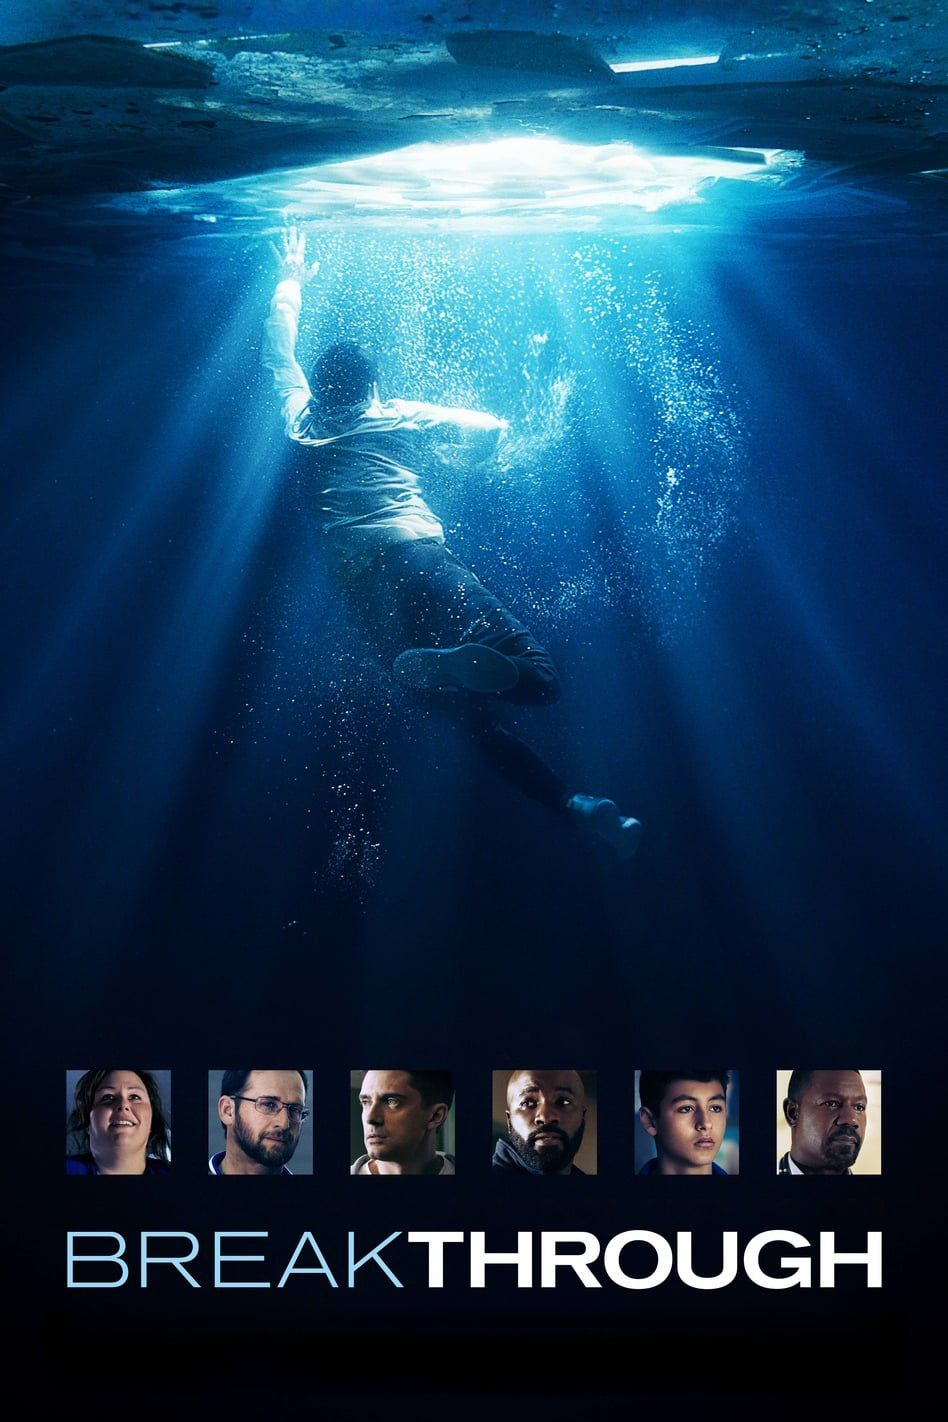 Ver Pelicula Completa Breakthrough Ver Online Gratis Https Www Repelis Biz Latino Pelicul Películas Completas Peliculas En Castellano Peliculas Online Gratis